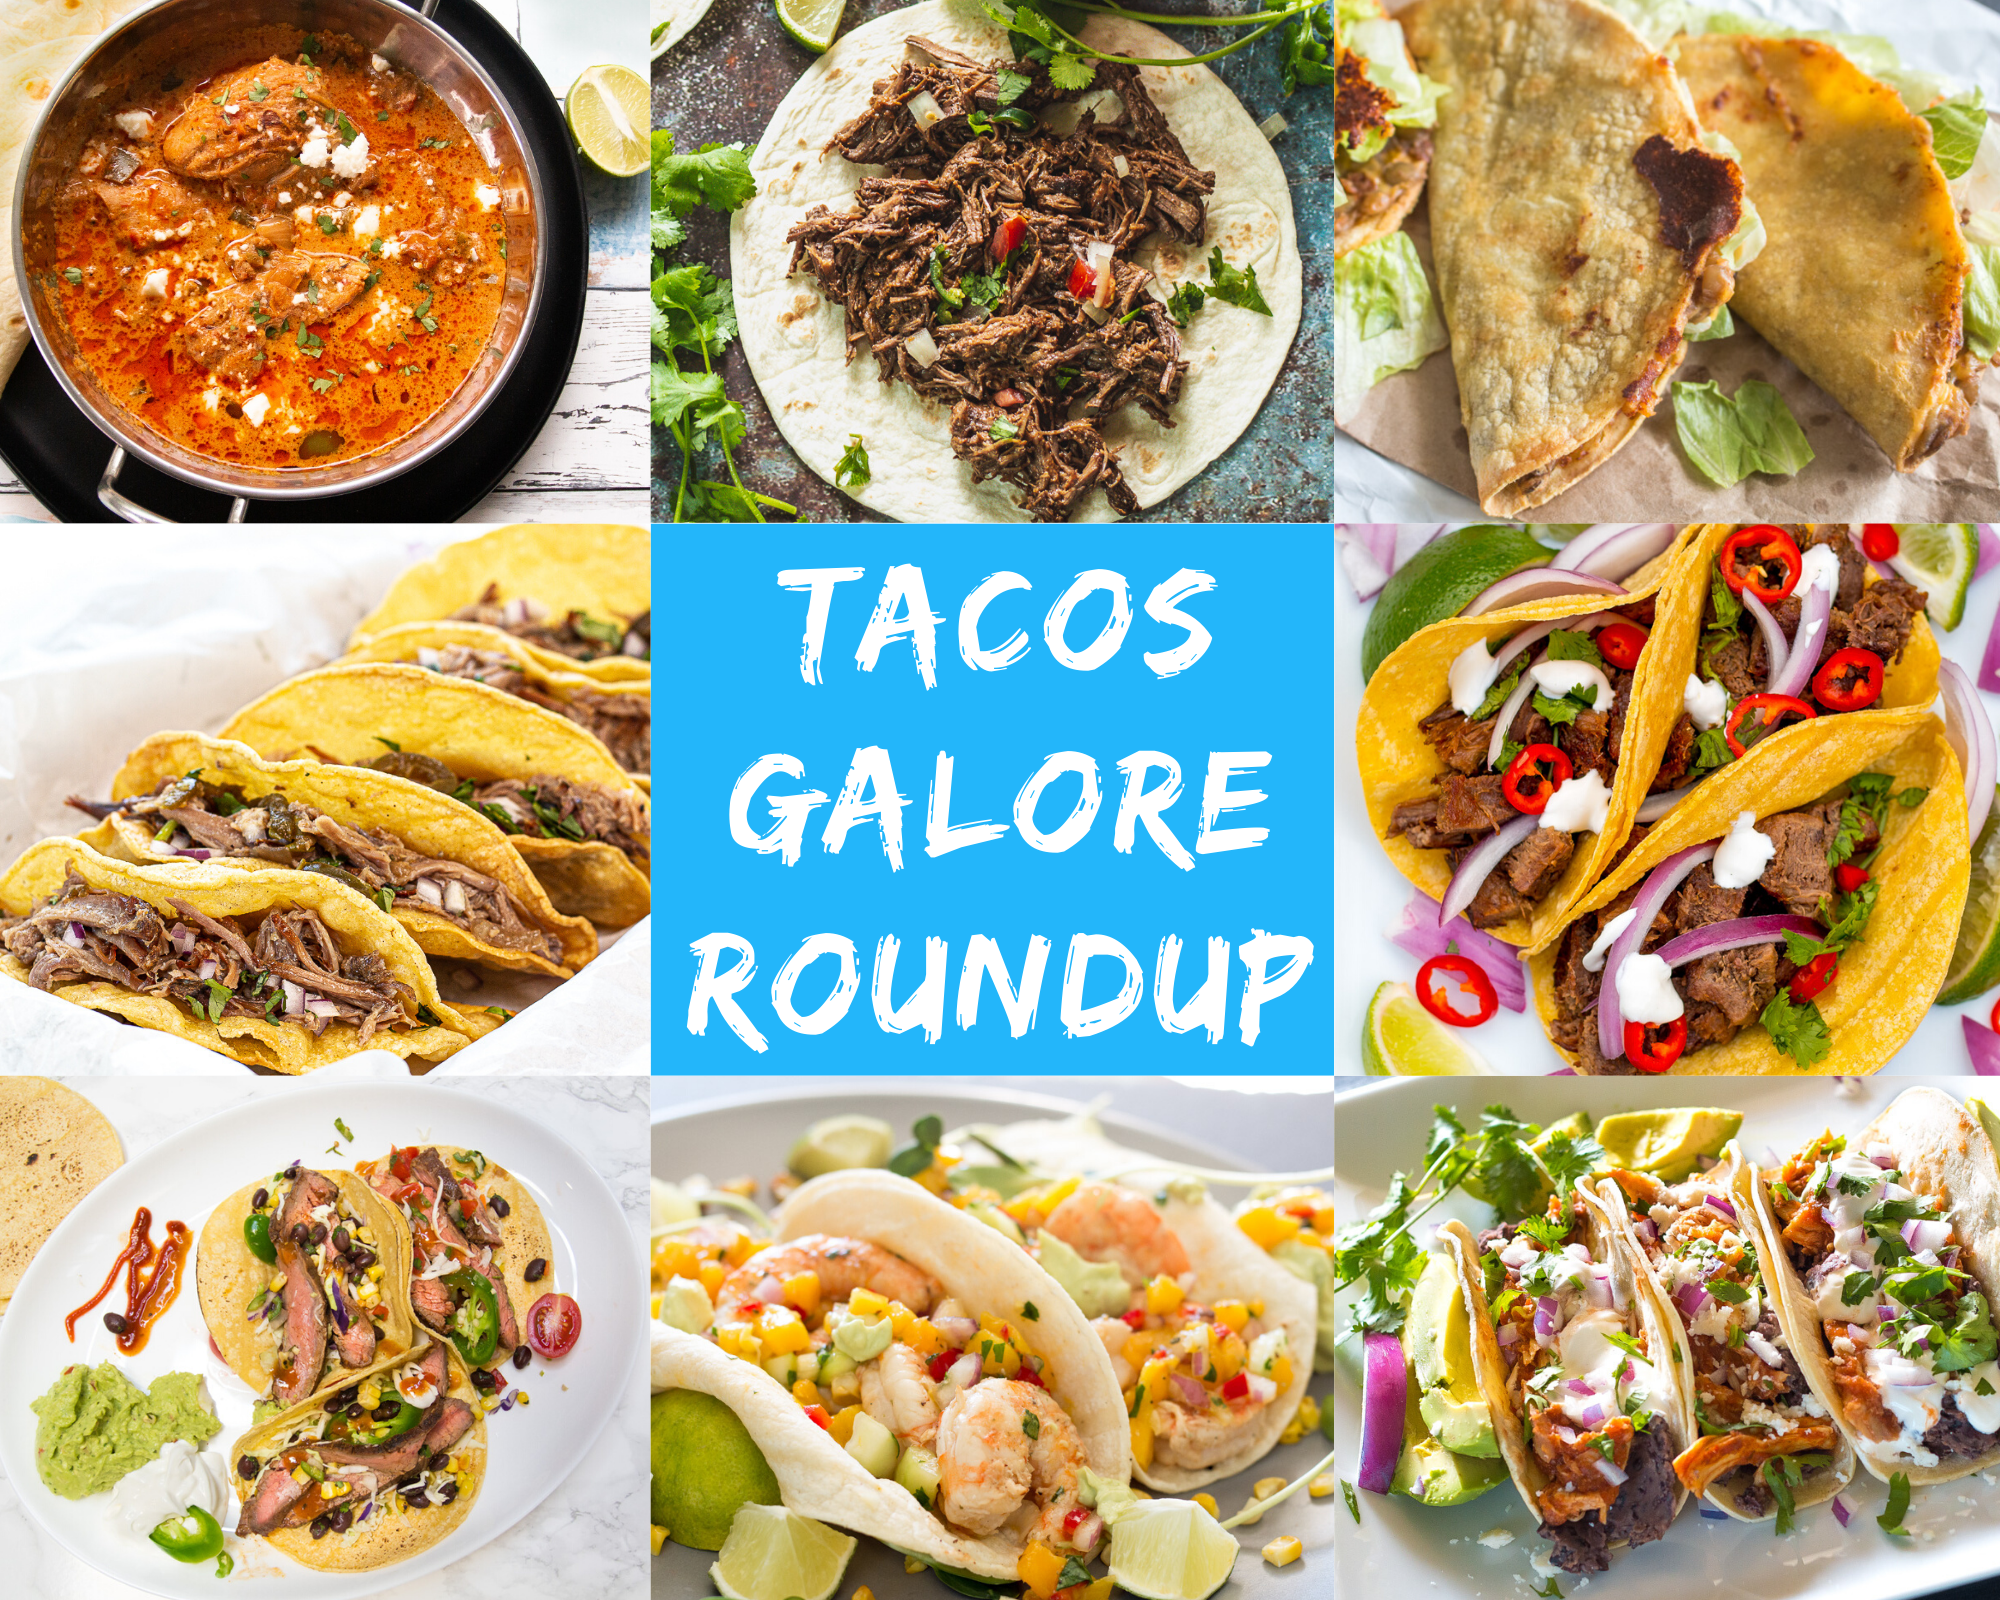 Tacos Galore Roundup - A roundup of the most delicious tacos you will ever need in your life!